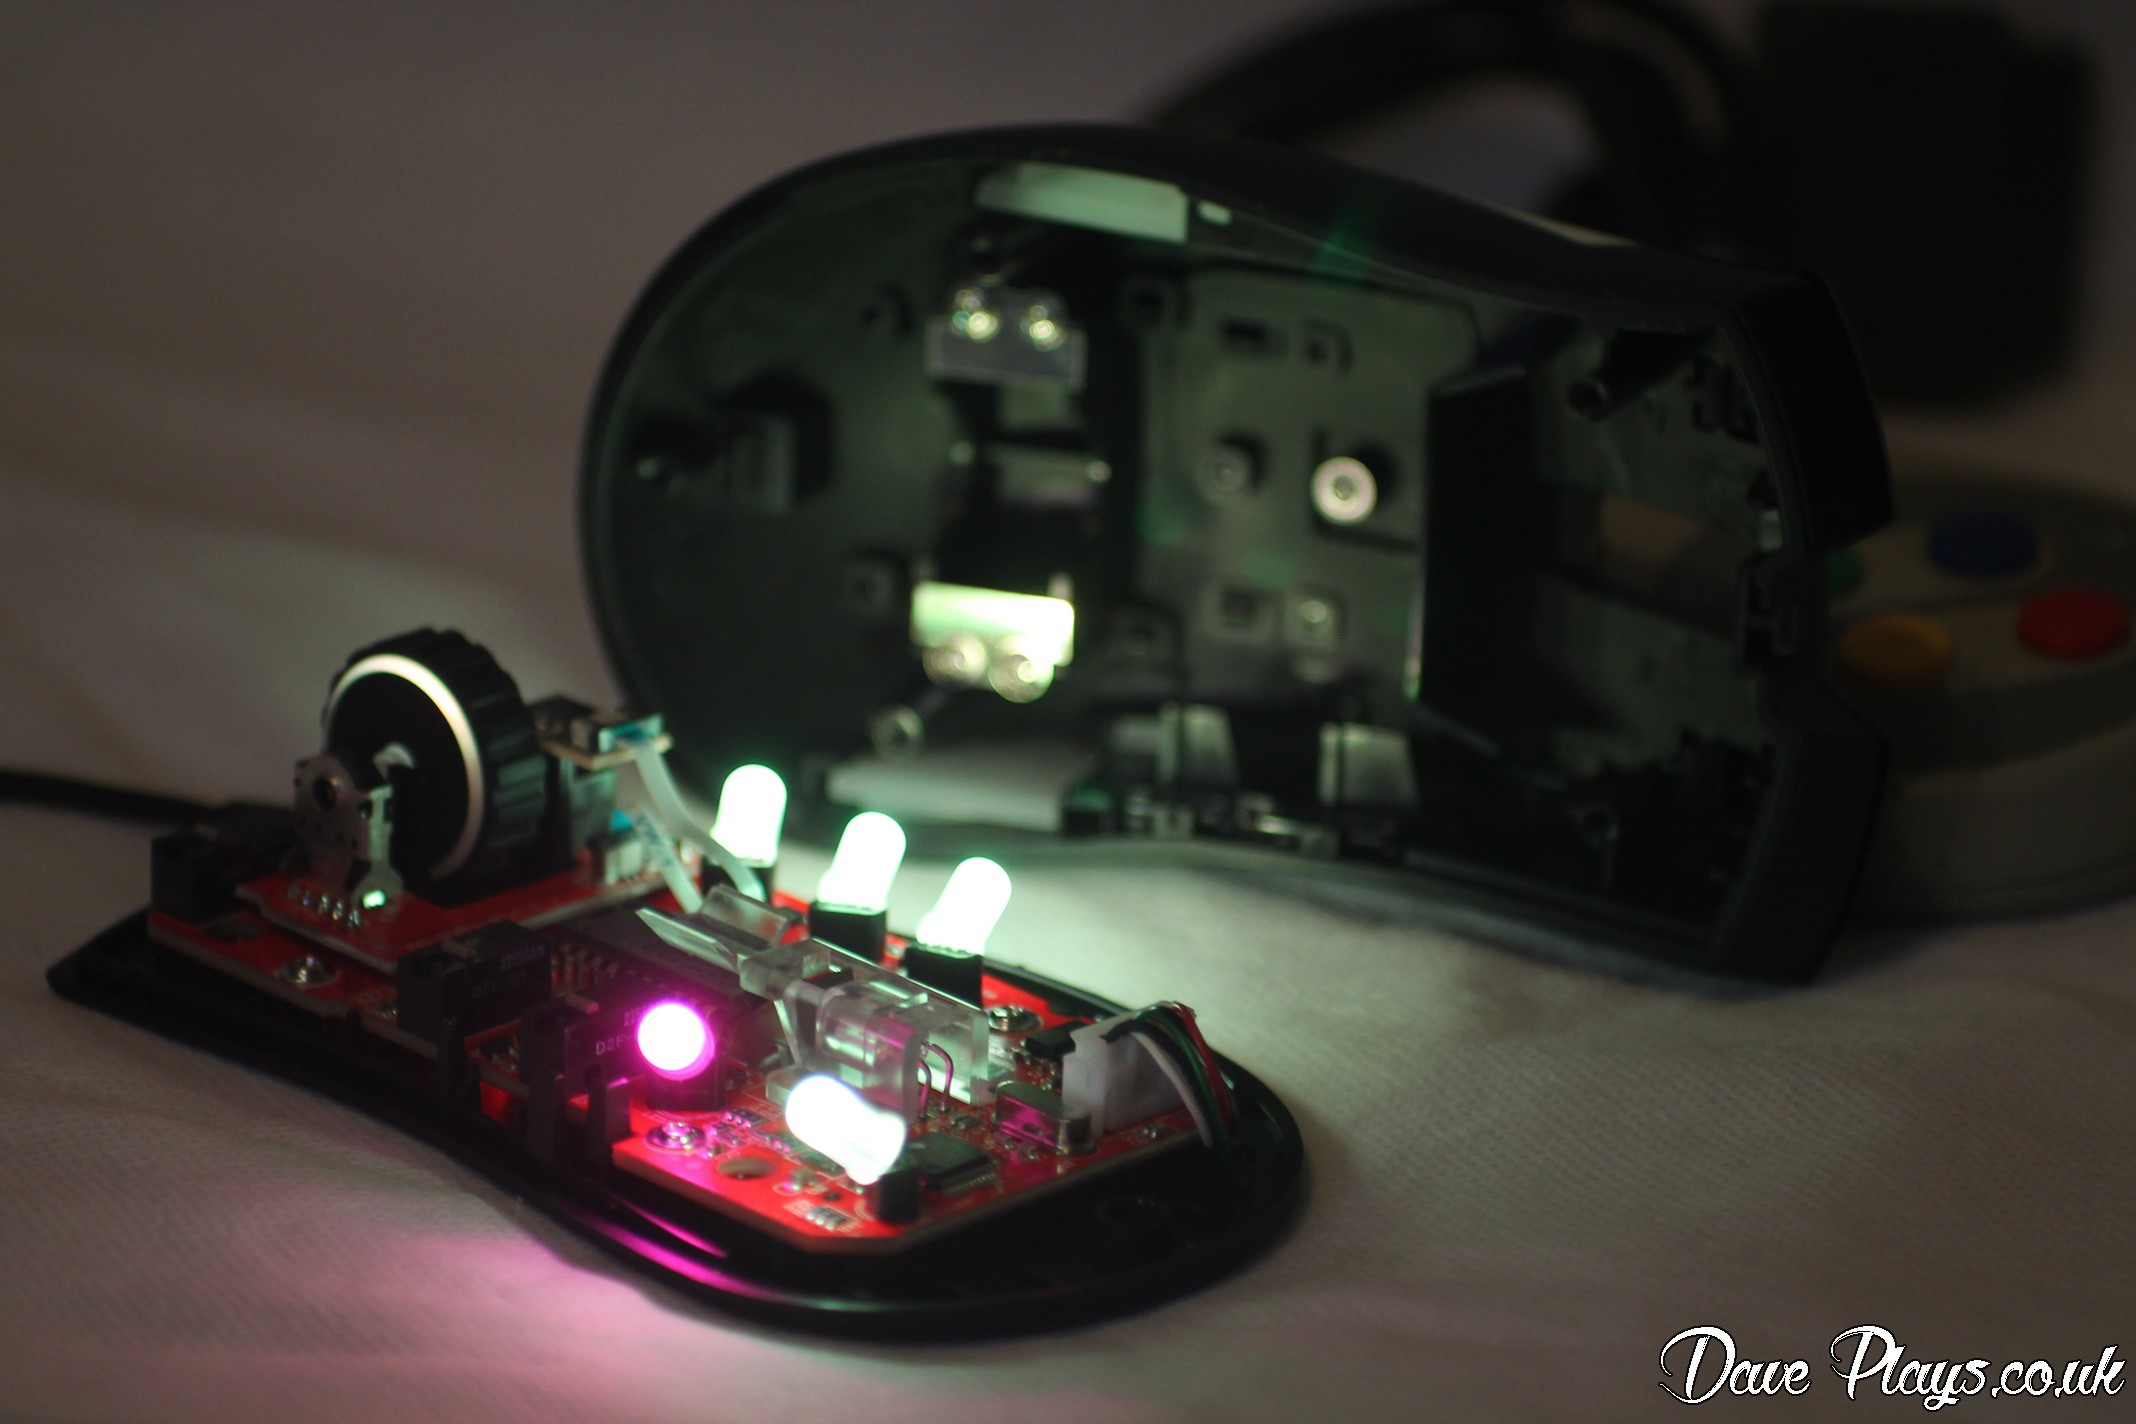 Ducky Secret Gaming Mouse Review